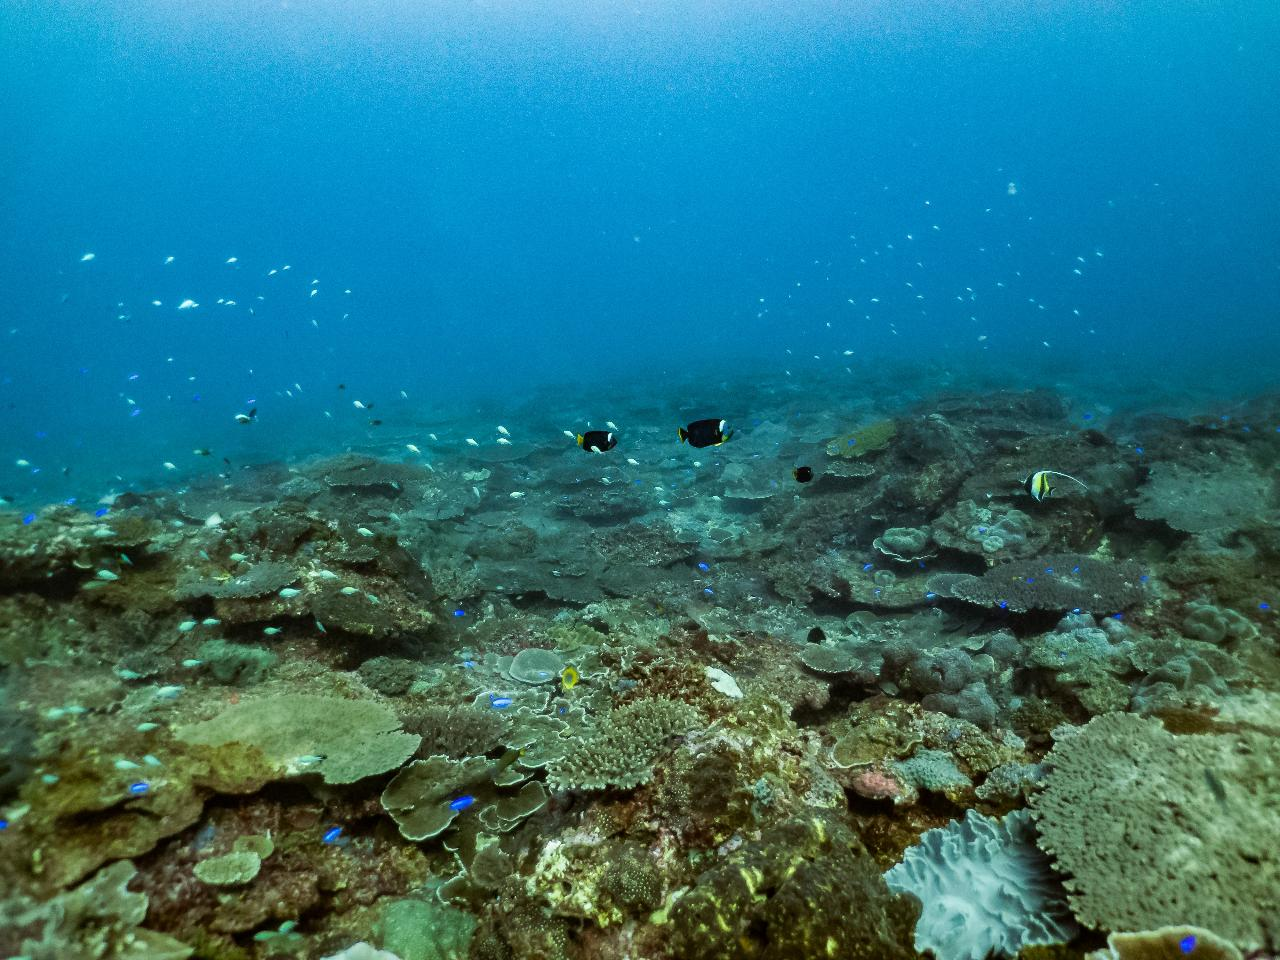 zLocal Reefs Double Dive (Shallow Reef Suitable for Open Water Students 6-18m)